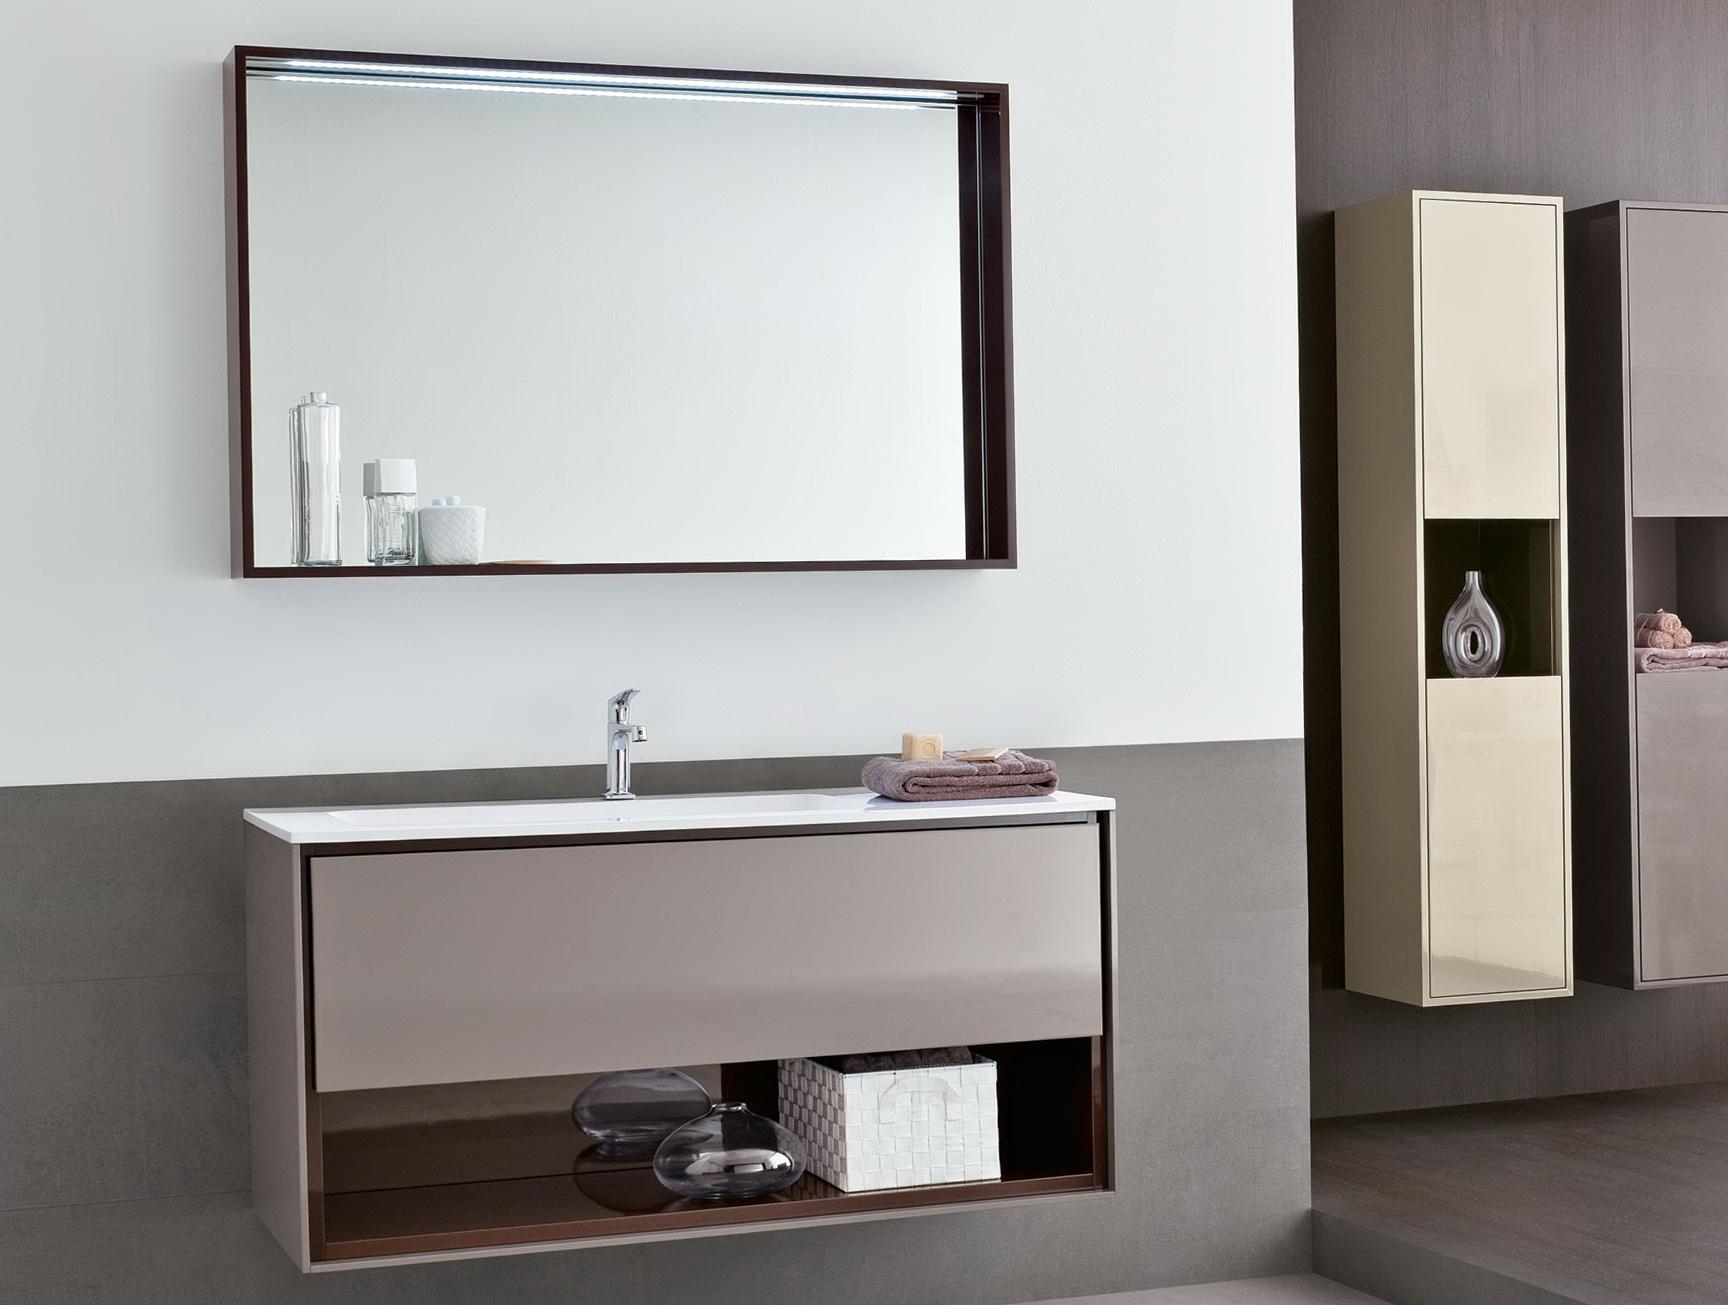 Bathroom Ideas: Large Bathroom Mirror With Shelf Above Single Sink Inside Tall Bathroom Mirrors (View 3 of 20)